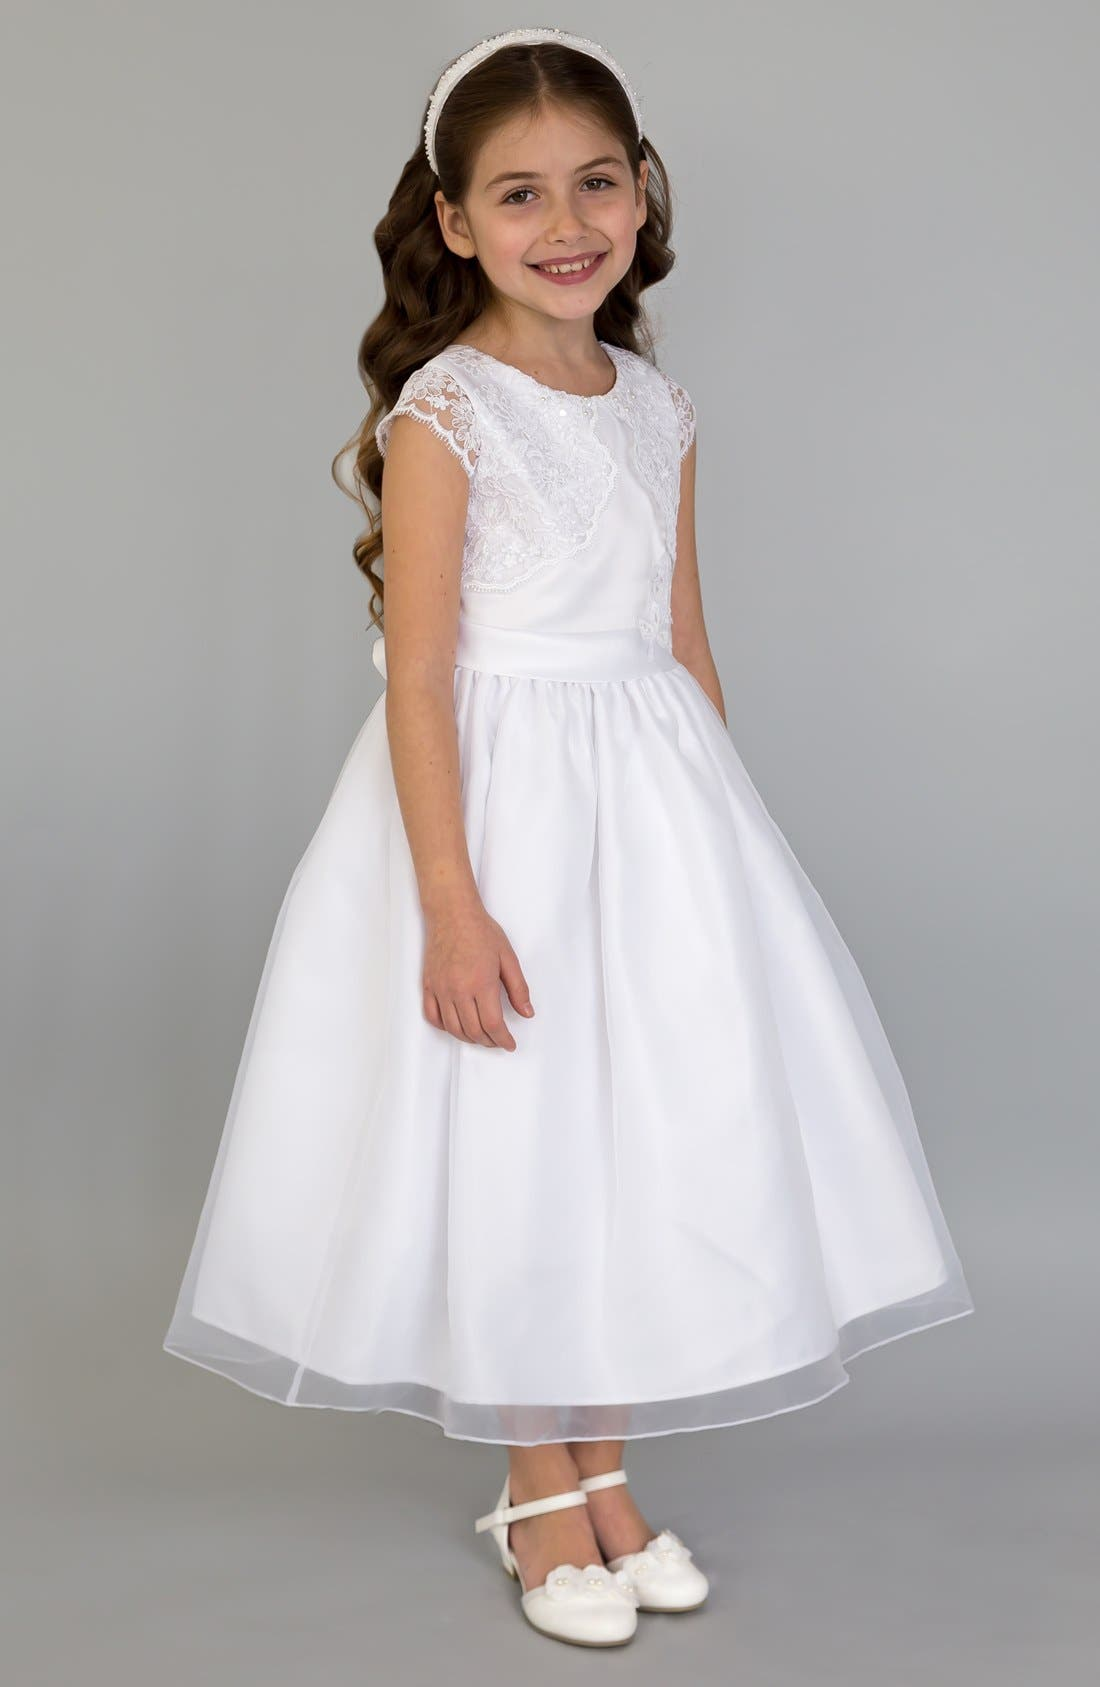 Alternate Image 1 Selected - Us Angels Lace Fit & Flare Dress (Little Girls, Big Girls & Girls' Plus)